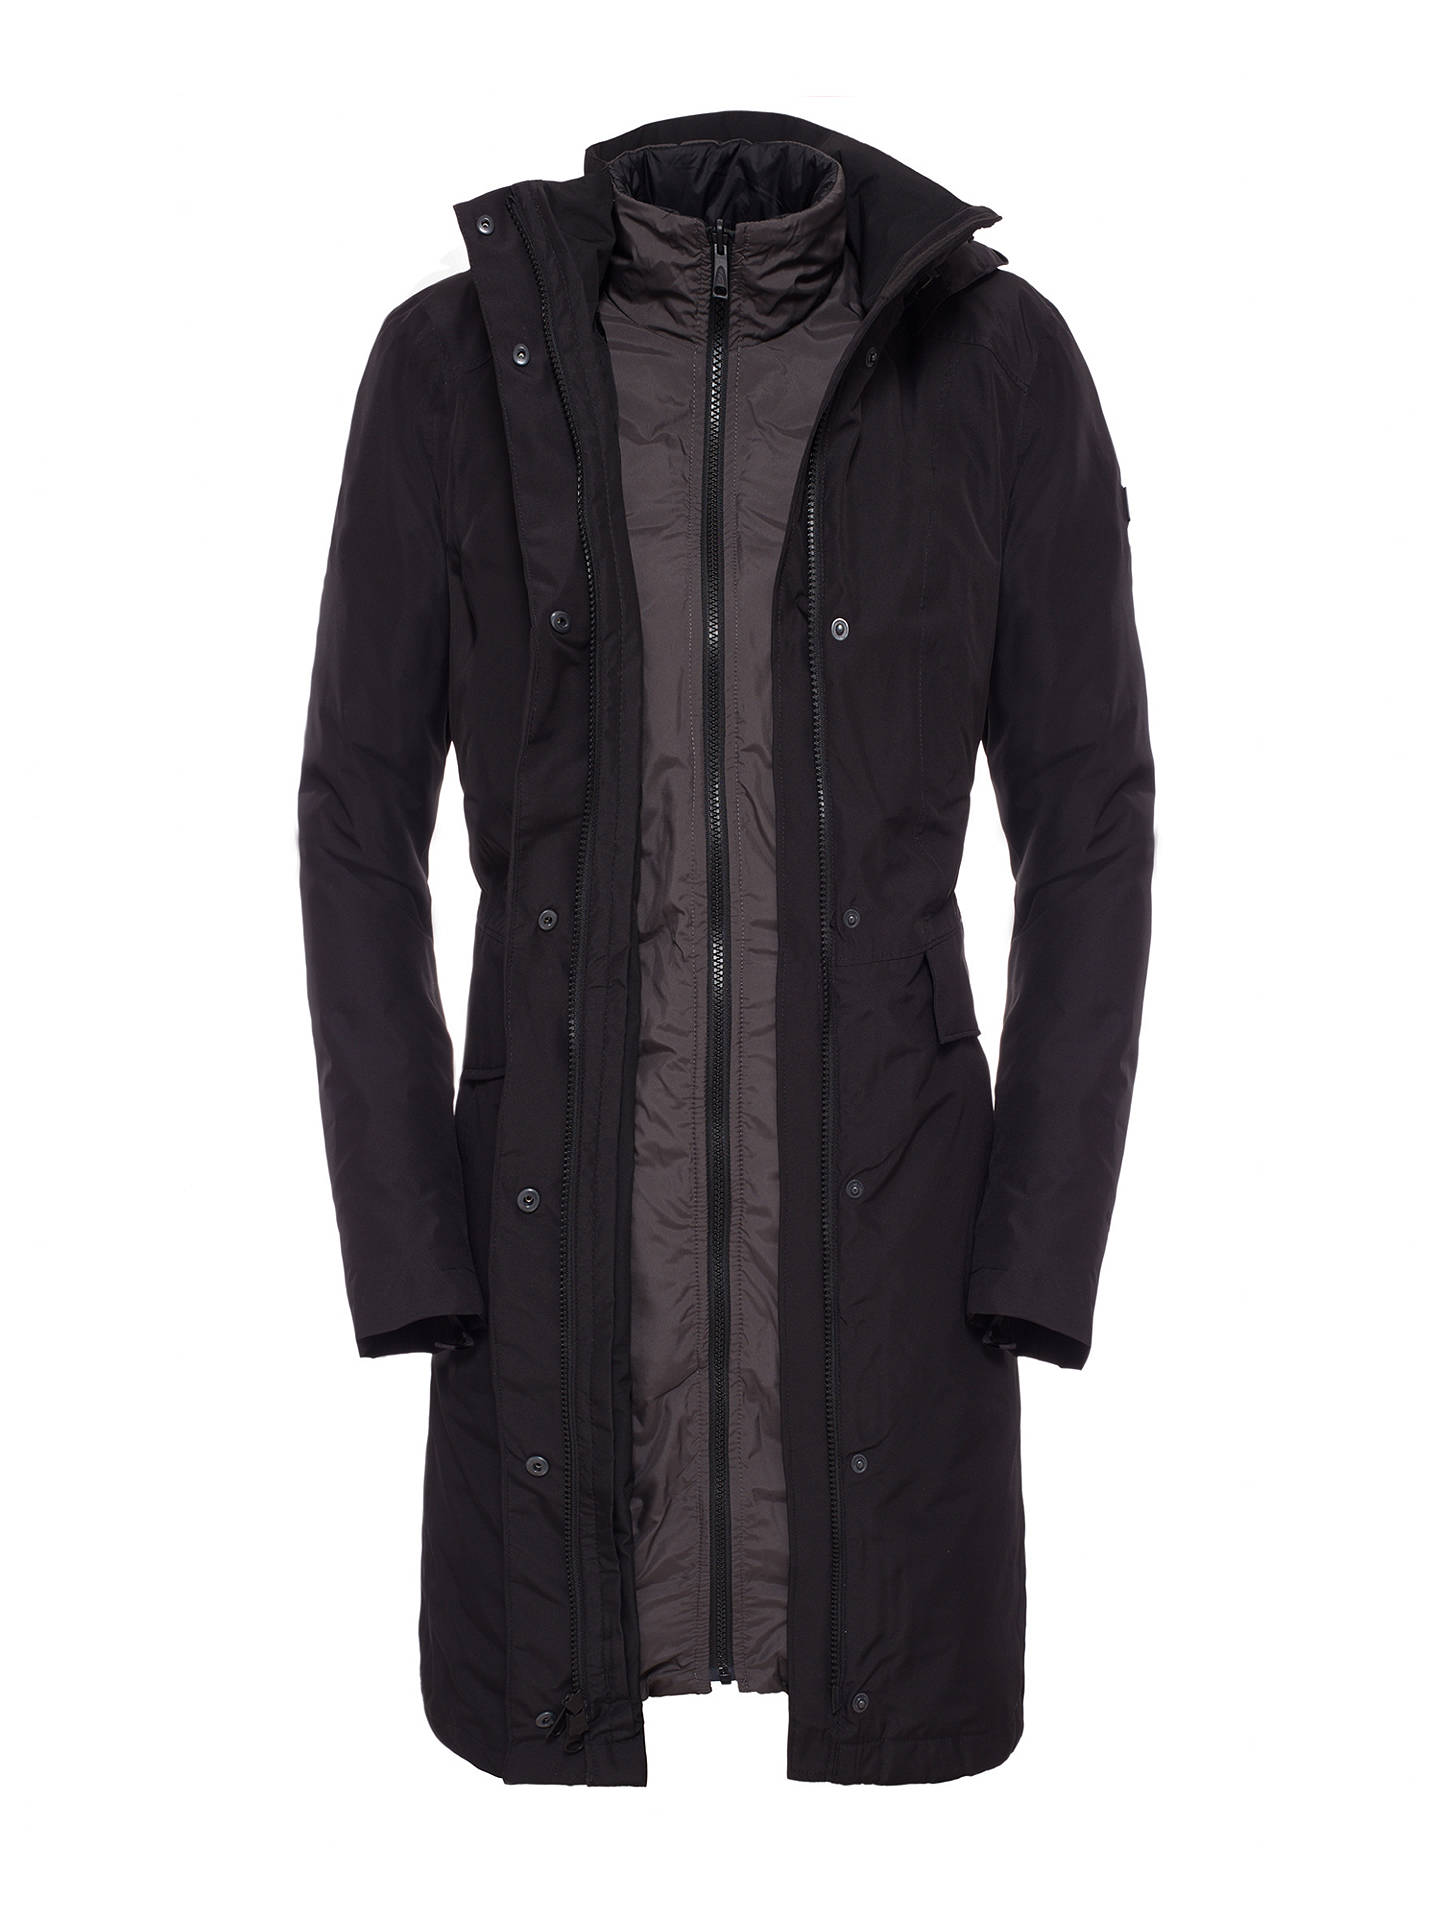 Buy The North Face Suzanne Triclimate Jacket, Black, XL Online at johnlewis.com